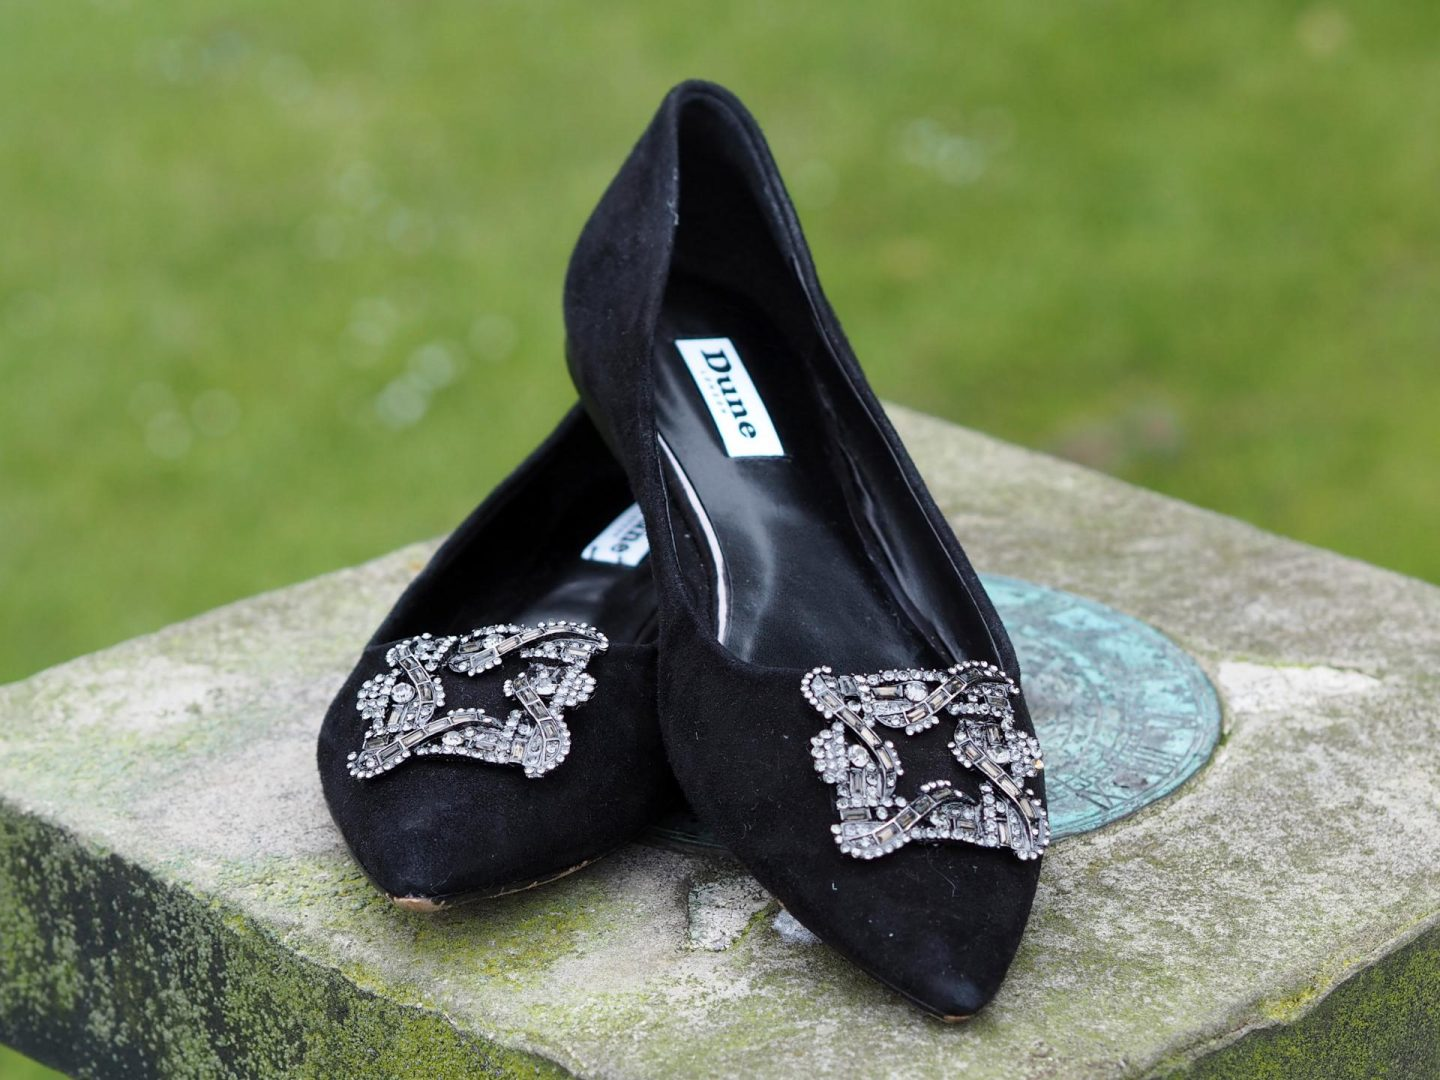 Seven Shoes in my Summer Shoedrobe - Rachel Nicole UK Style Blogger 3